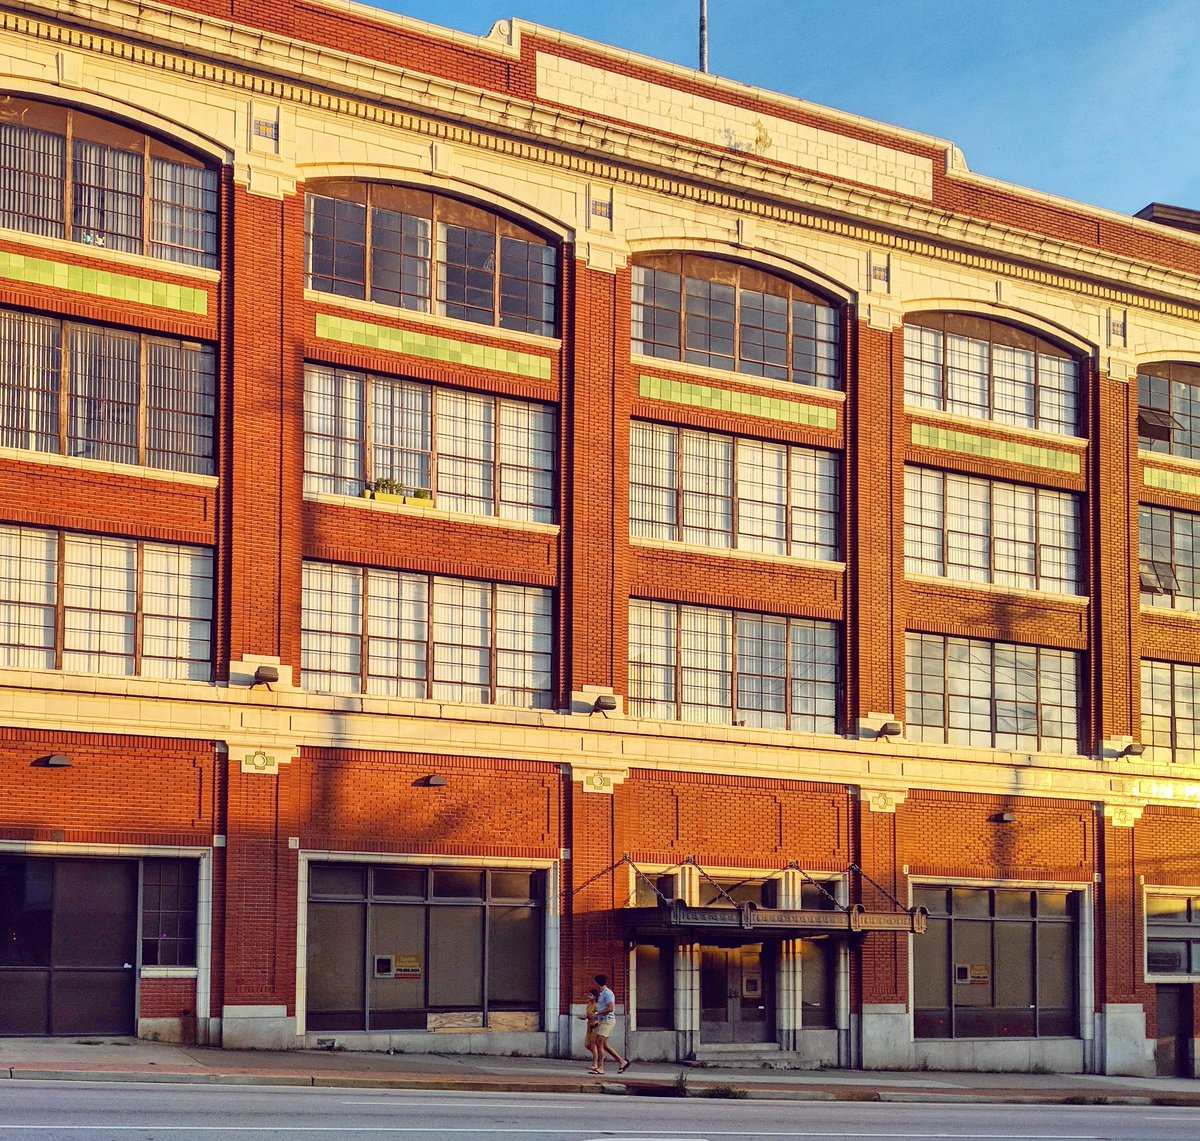 ... Next To The Beltline. Built In 1914 15, It Was An Assembly Plant For  Ford Model Ts, Then It Served As A Storage Deport For The War Department  During WW ...